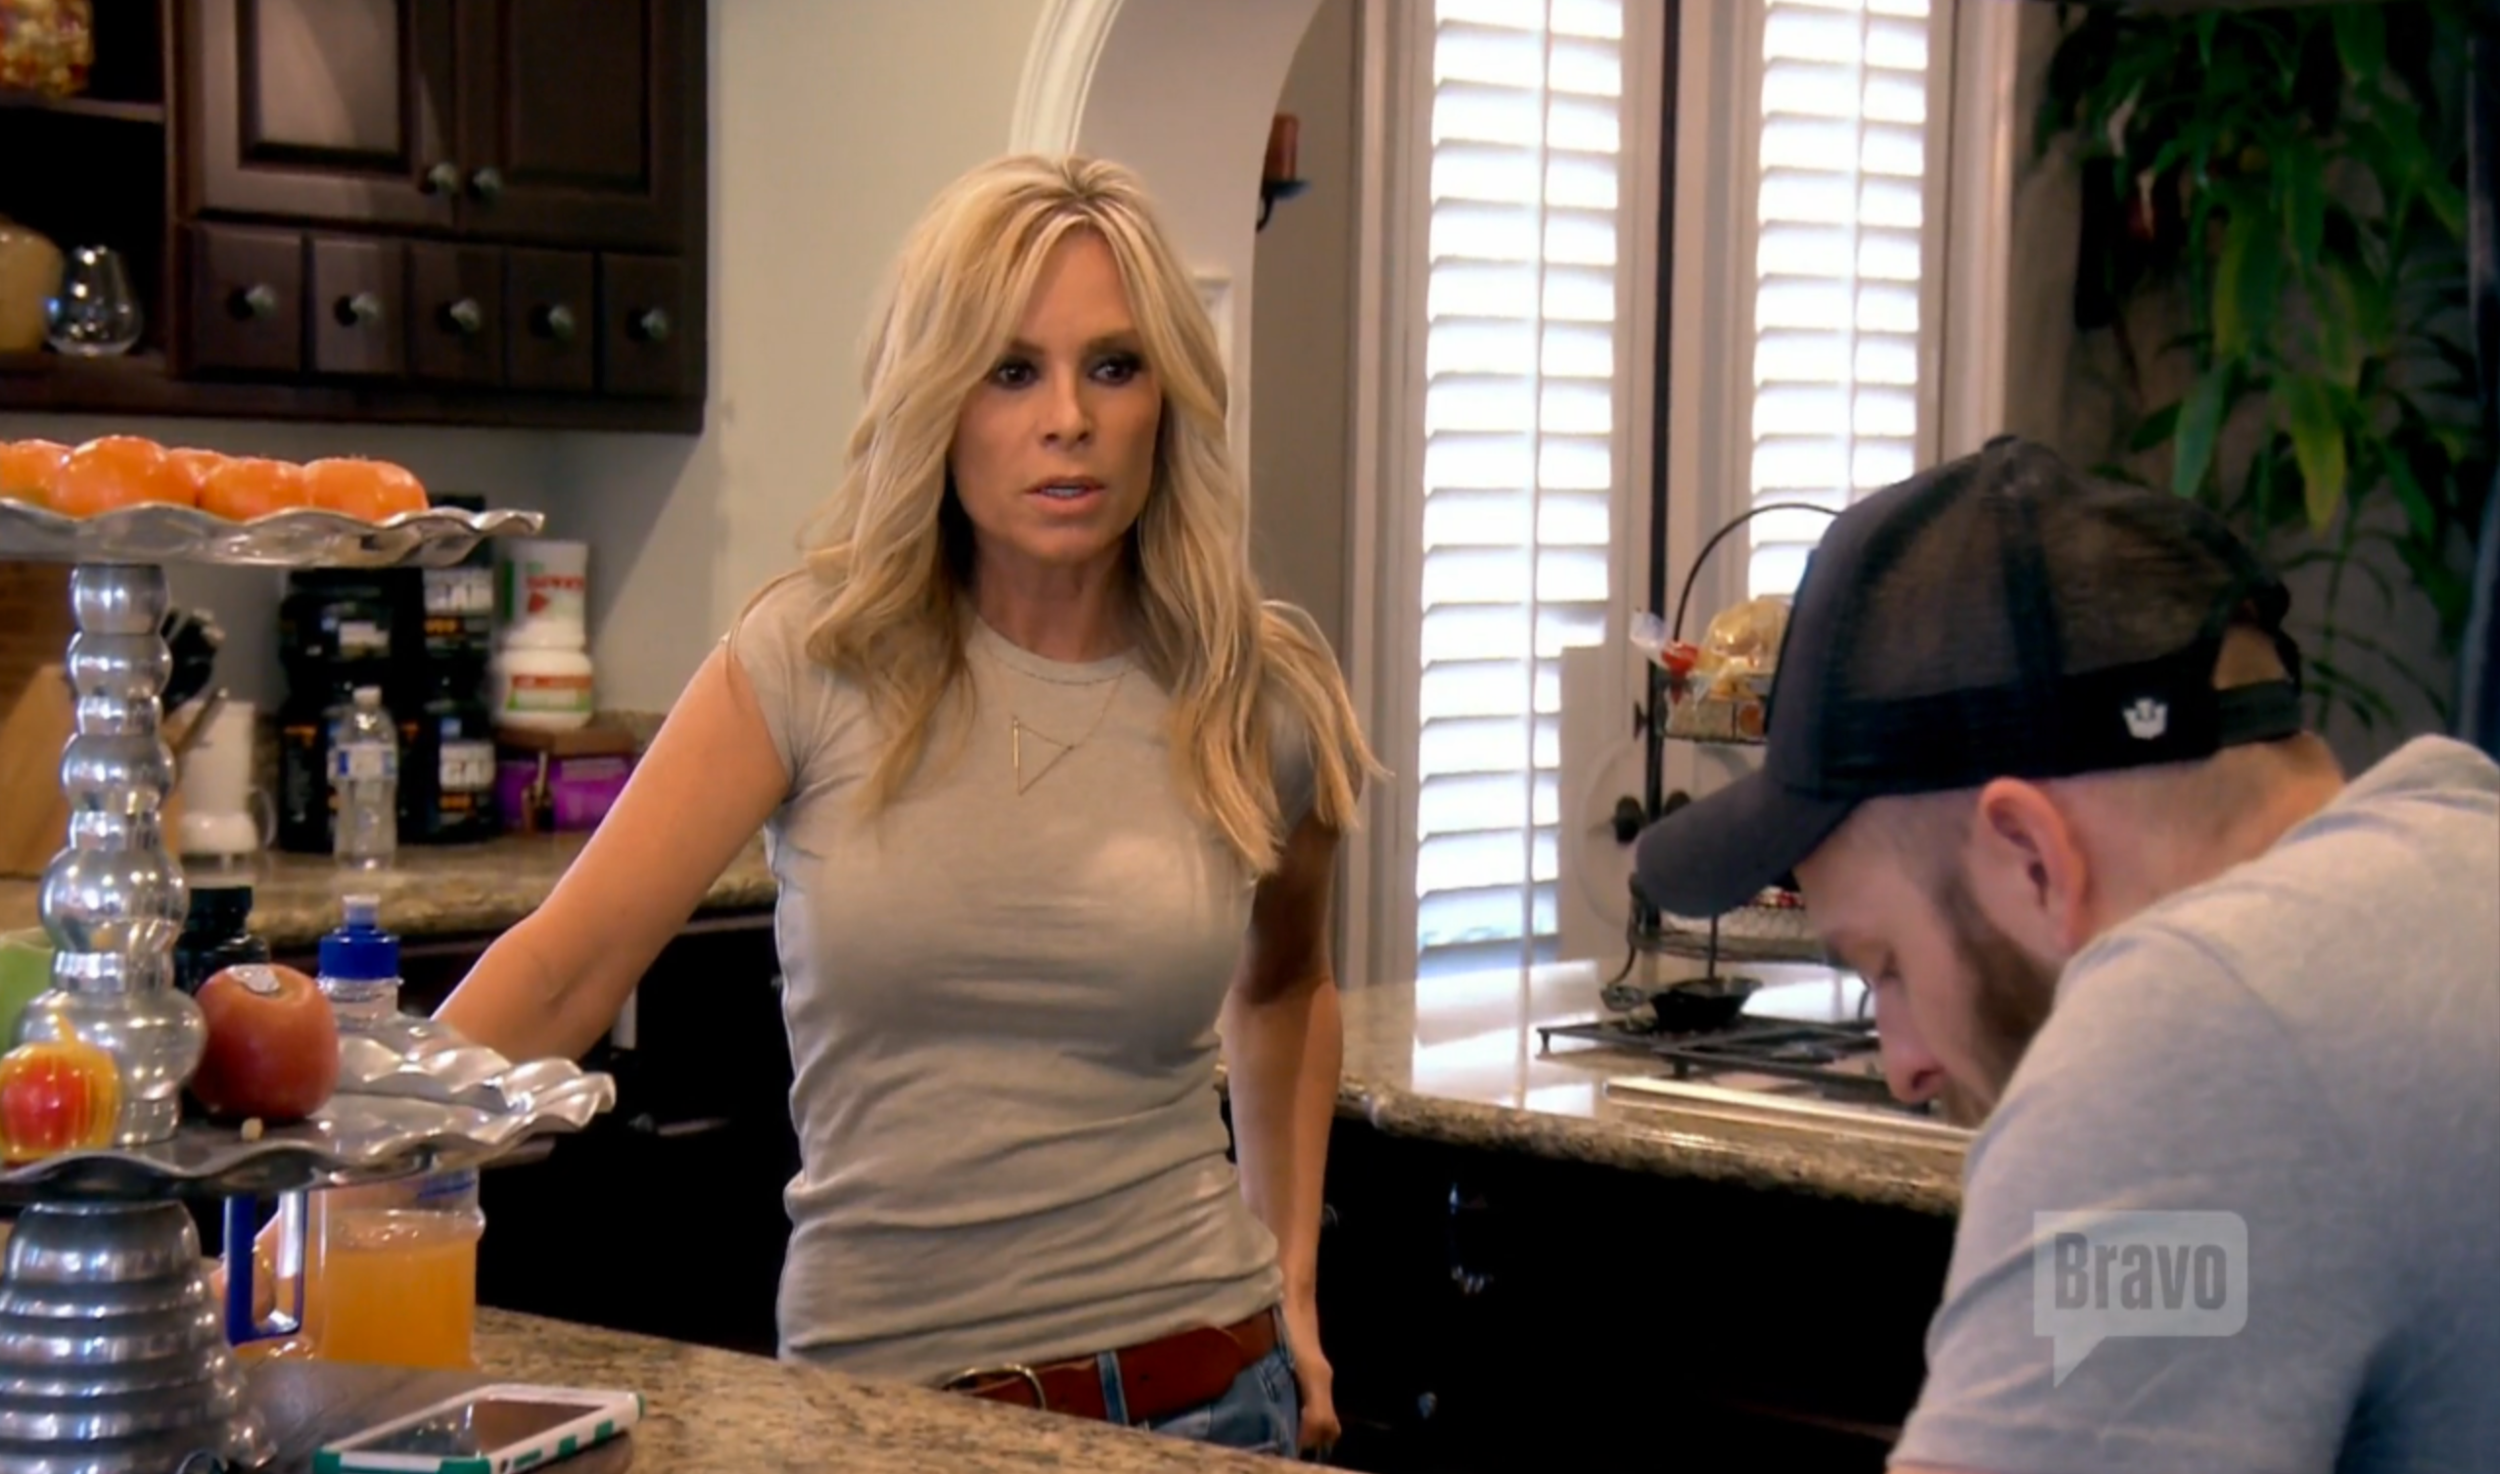 real-housewives-of-orange-county-tamra-judge